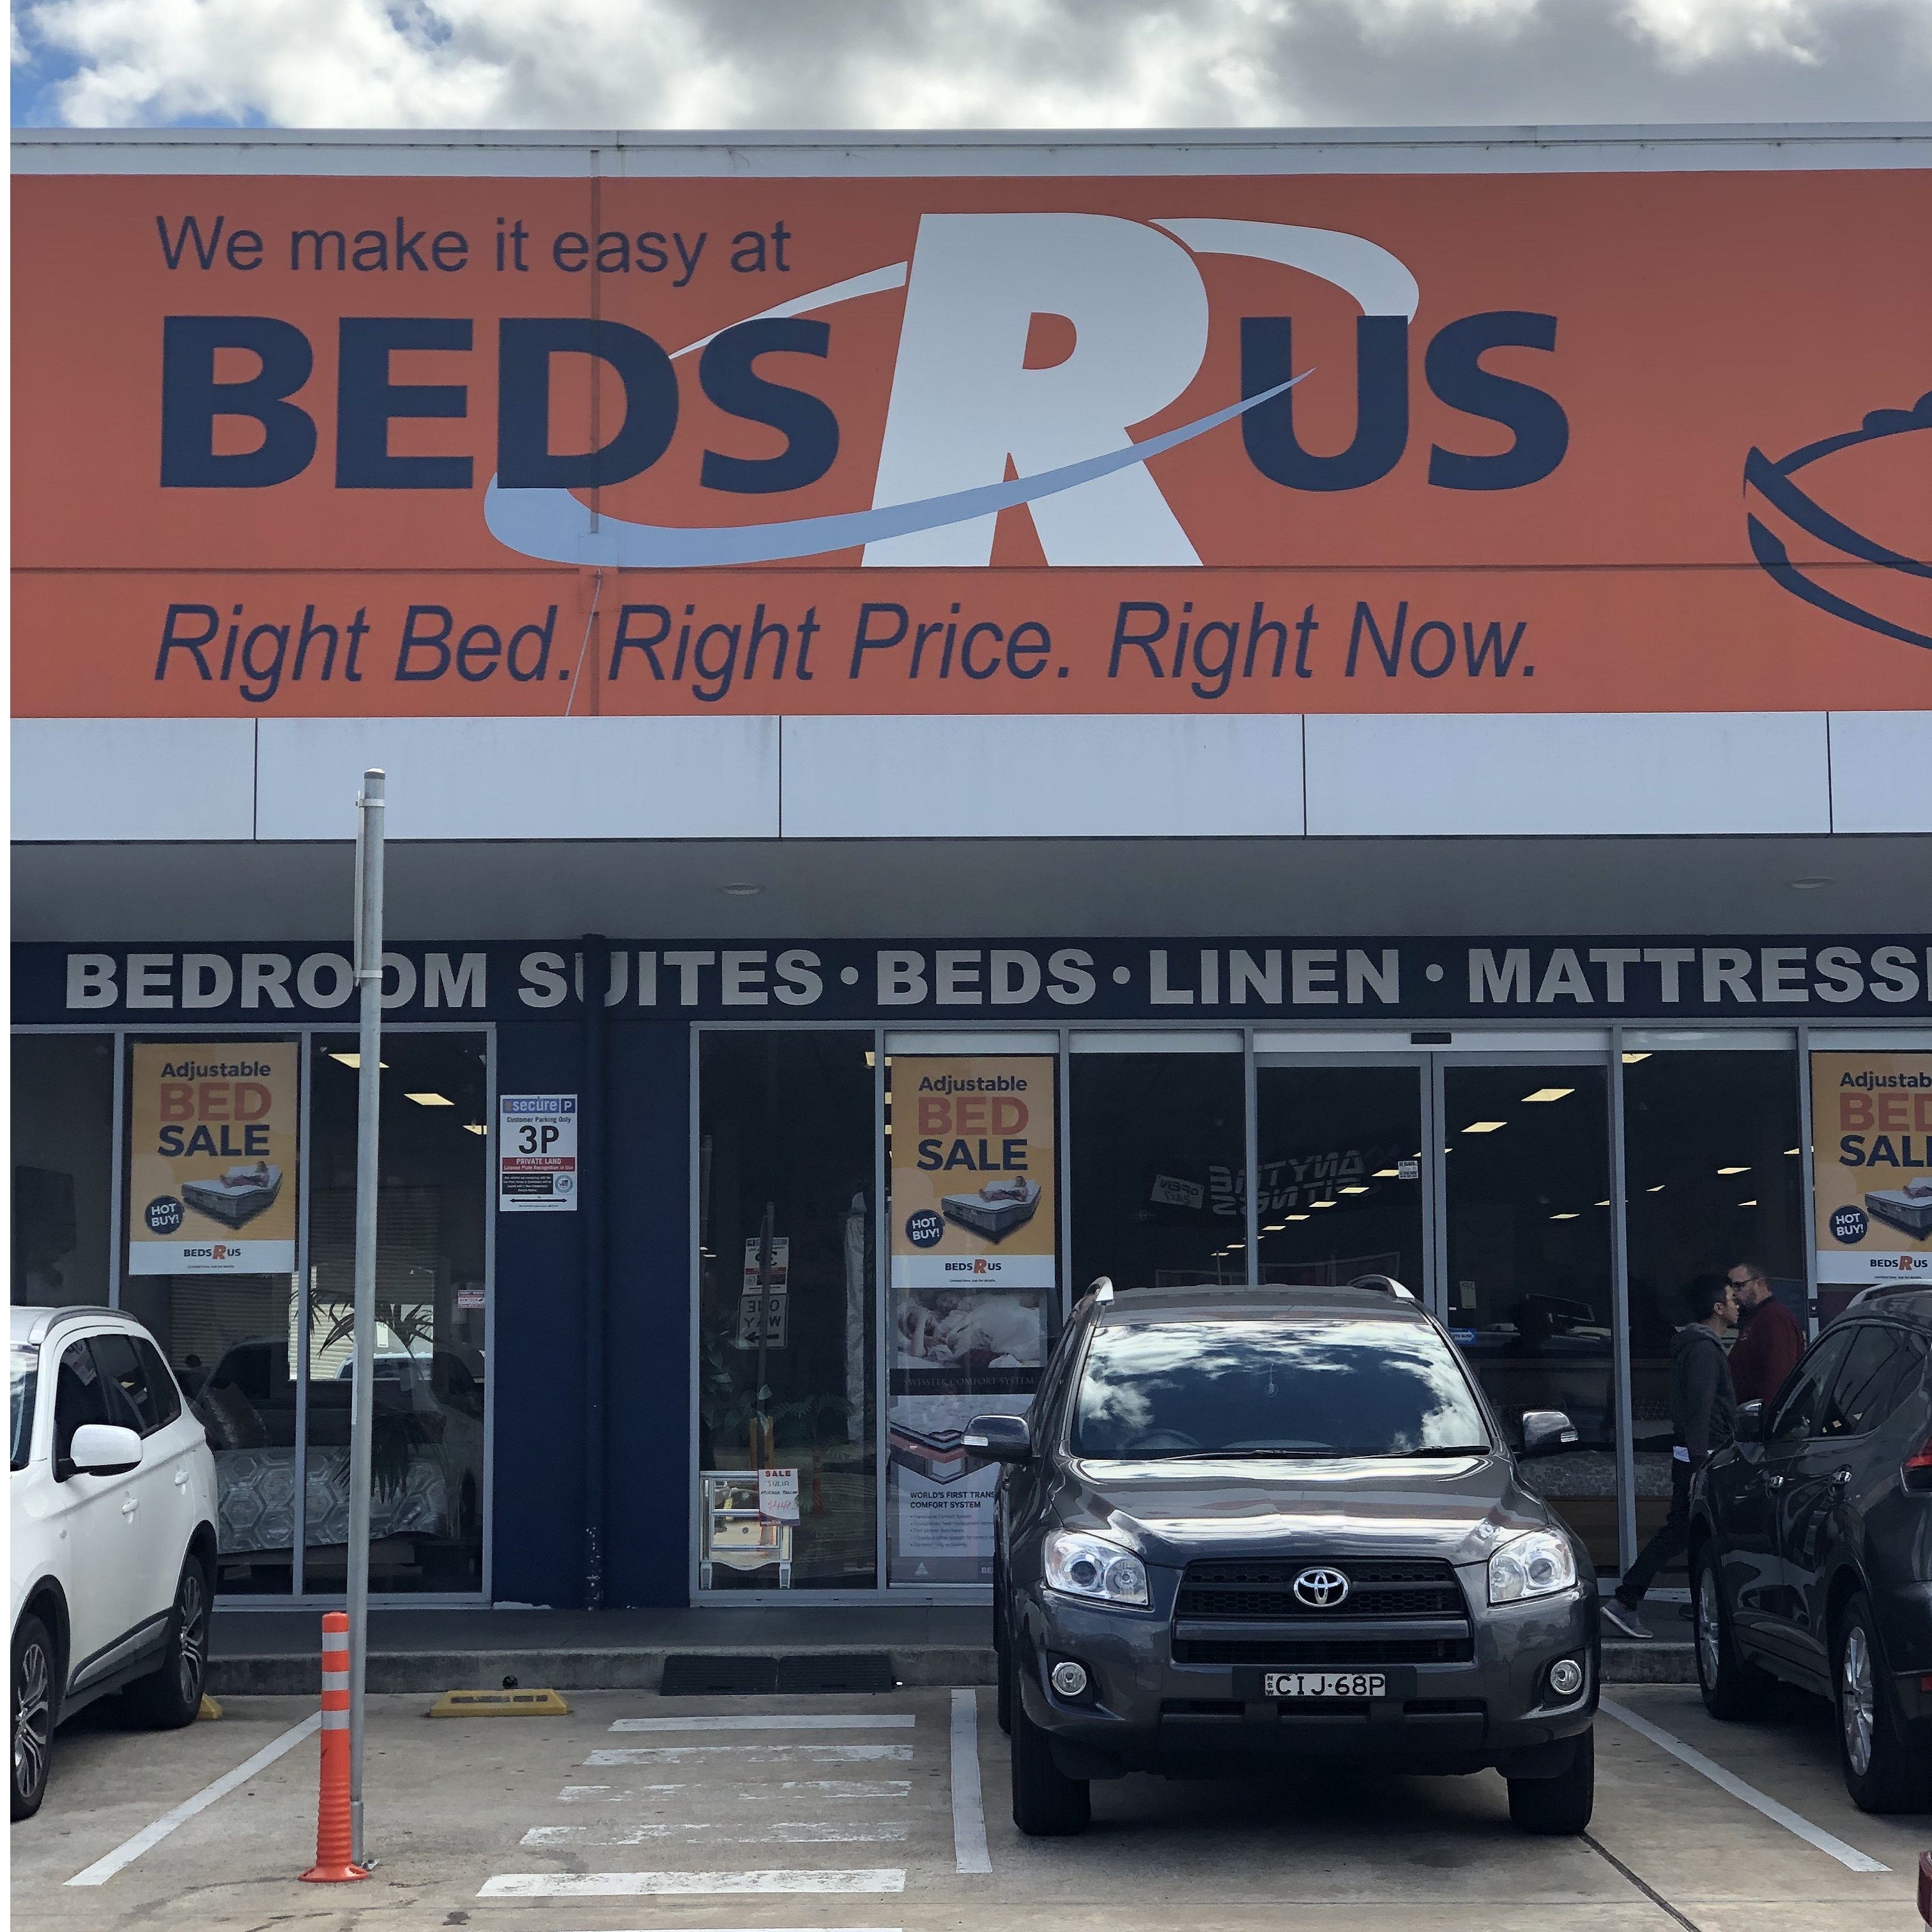 Beds R Us store